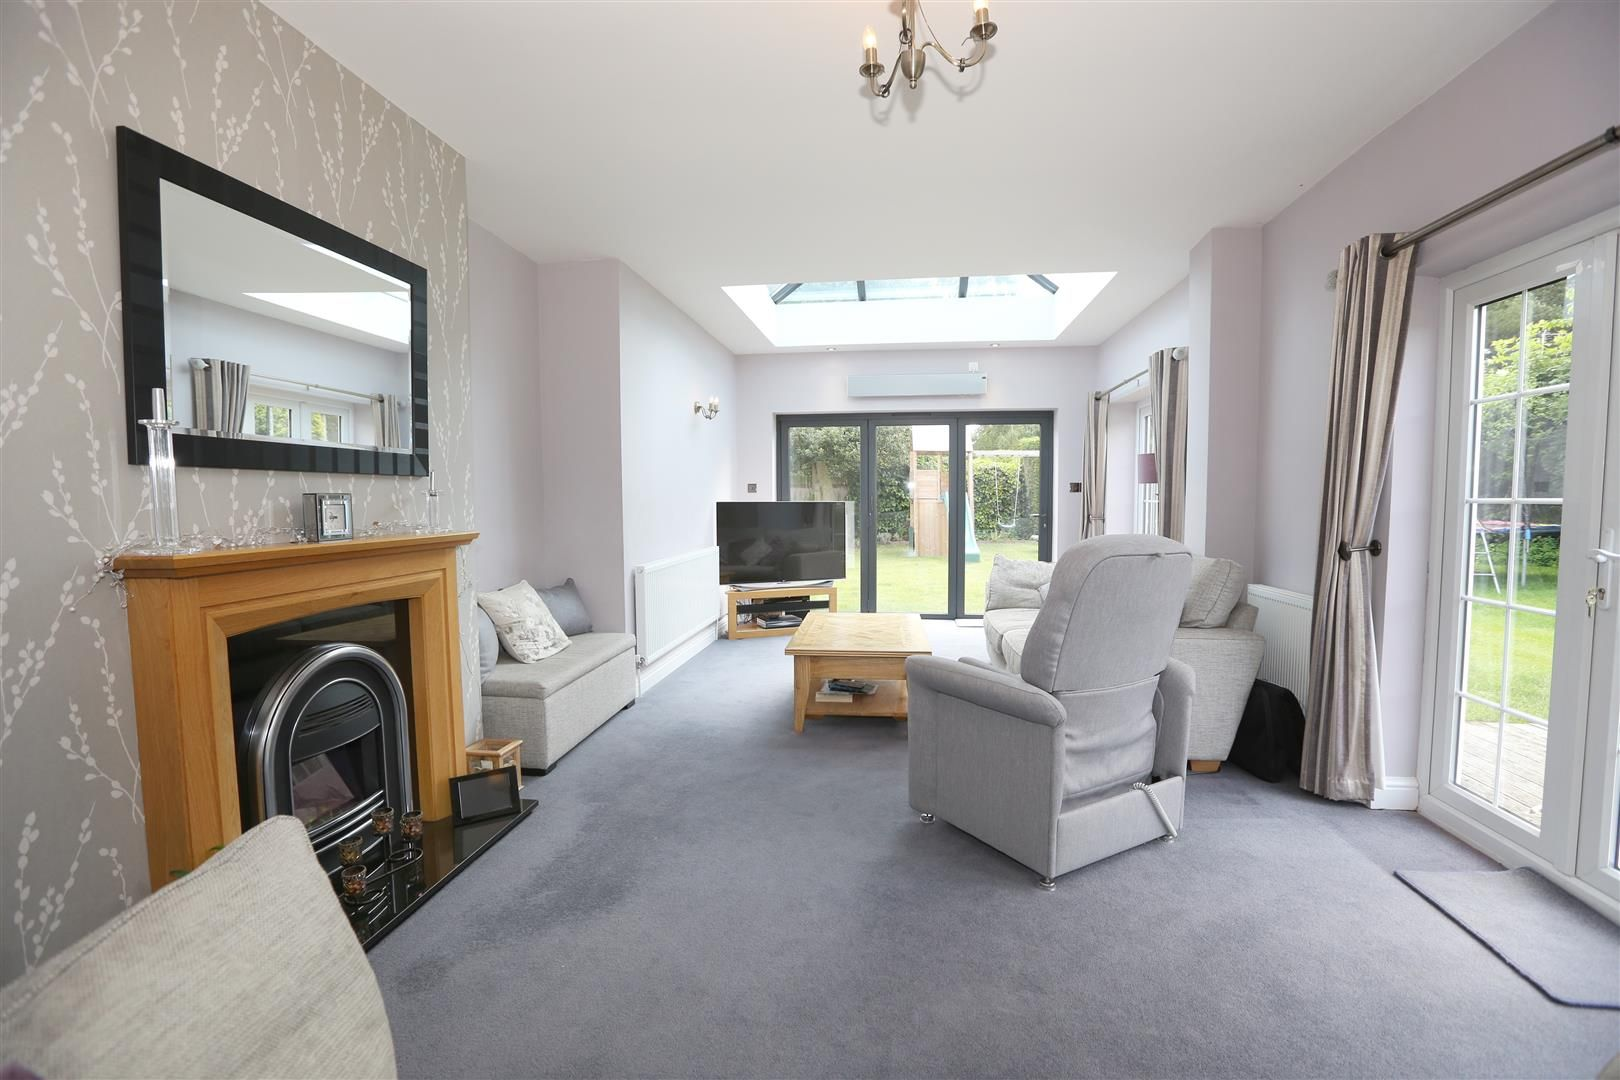 4 bed house for sale in Churchill 4